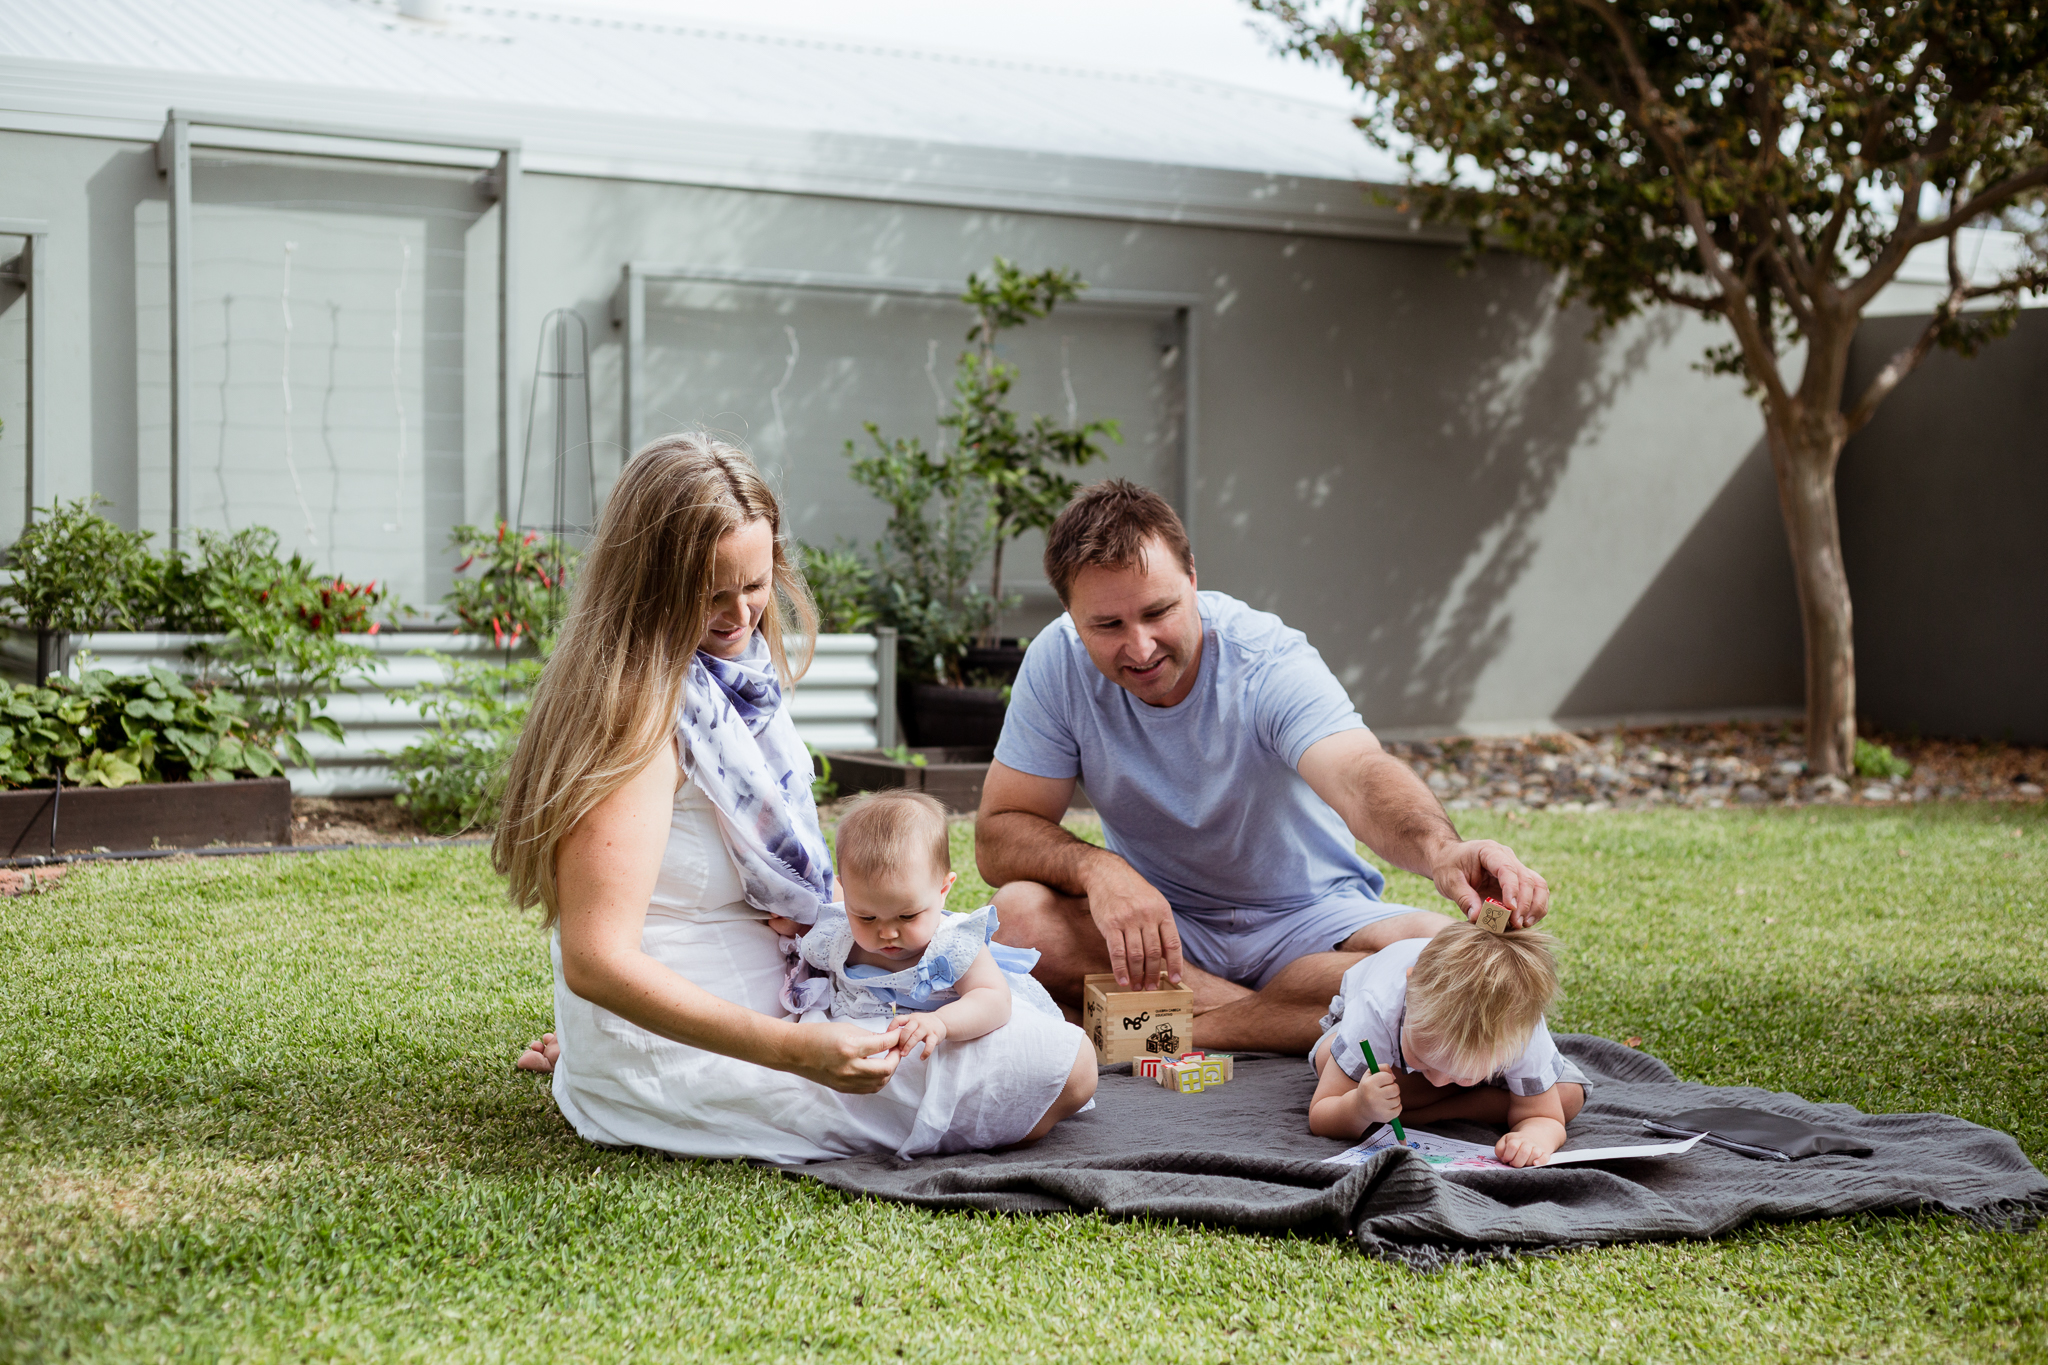 Mrs-Gardiner_Margaret-River-Family-Photographer-Inhome-Session-Busselton-South-West-Documentary-Photography-ACJT-21.jpg